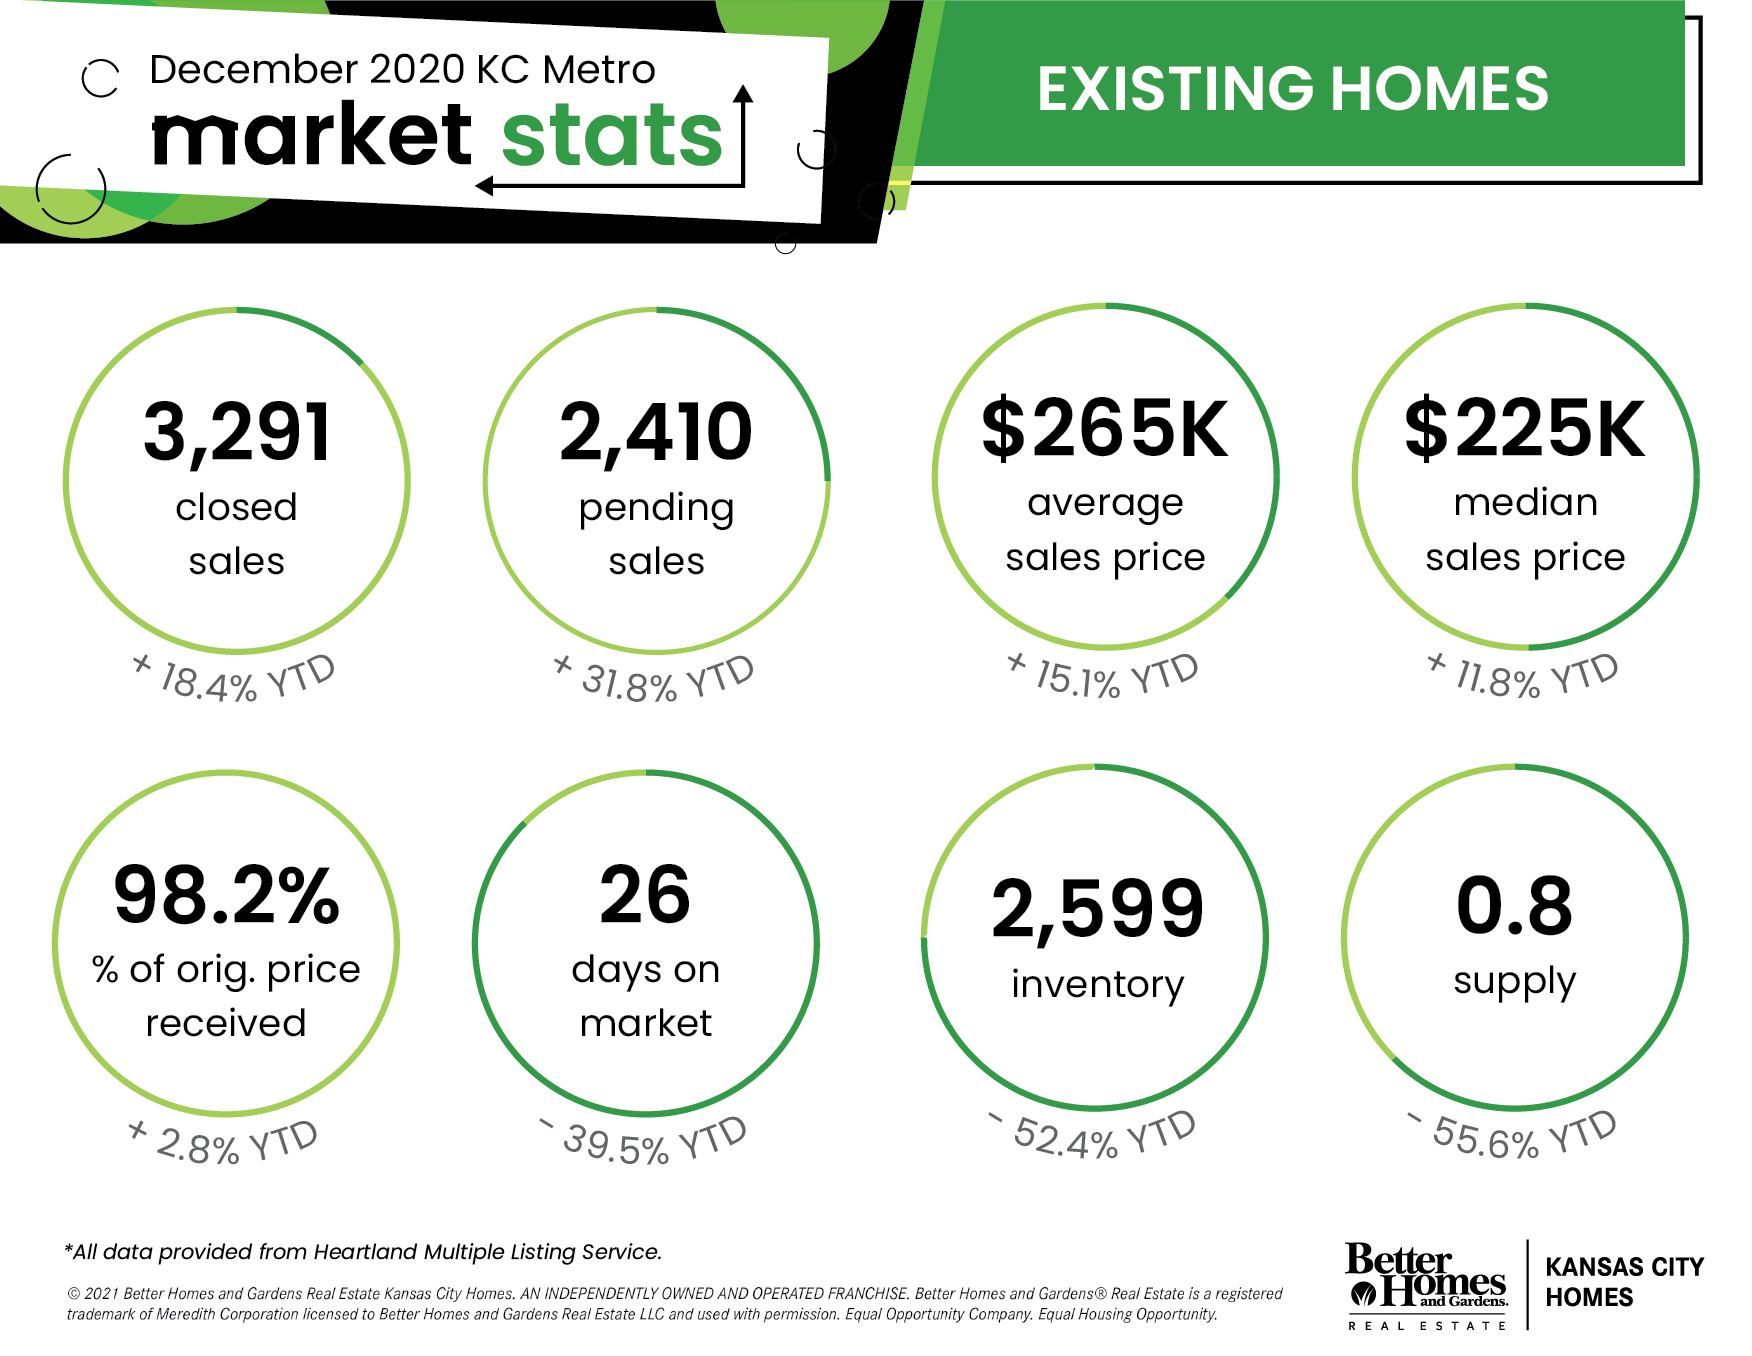 Kansas City Metro Area Real Estate Stats - December 2020 | Existing Homes